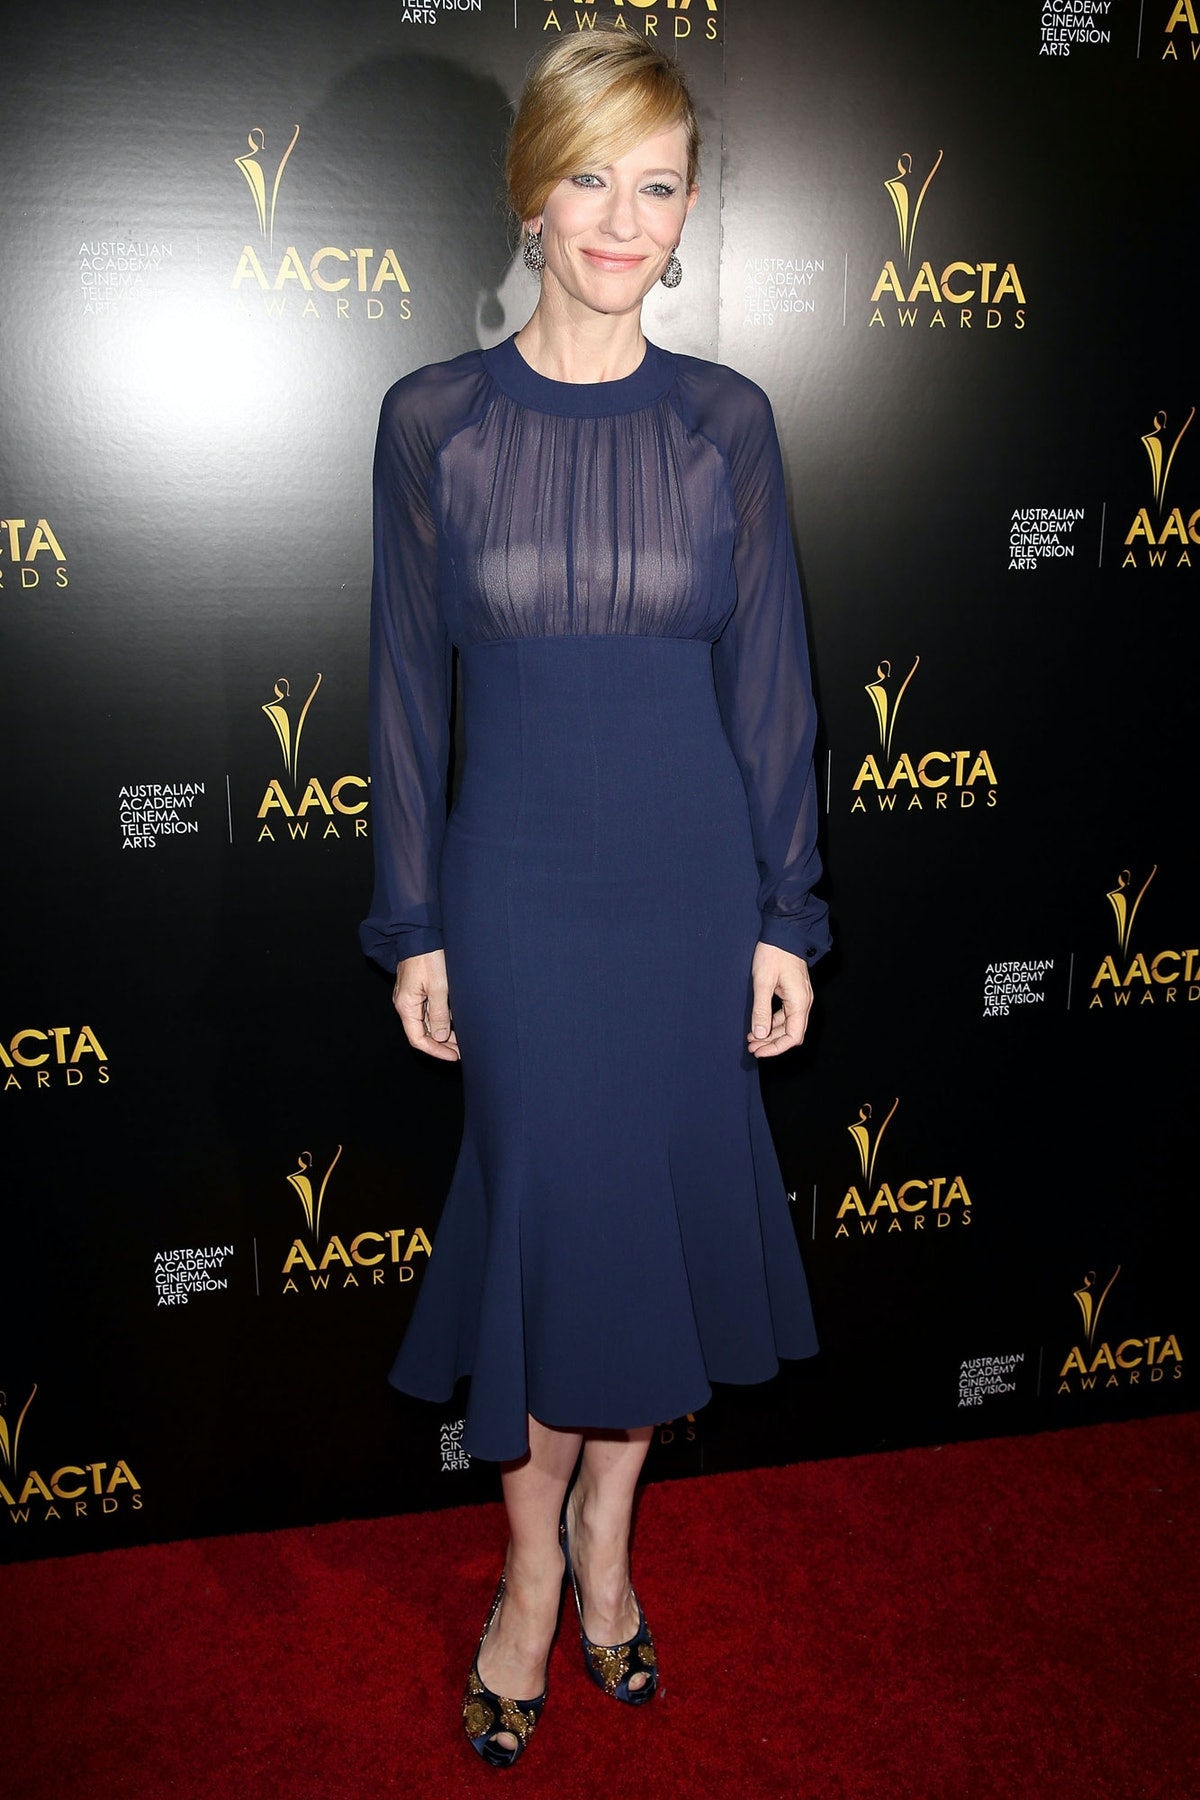 For the AACTA Awards, Blanchett chose a slightly '70s navy flare dress by [Michael Kors](http://www....